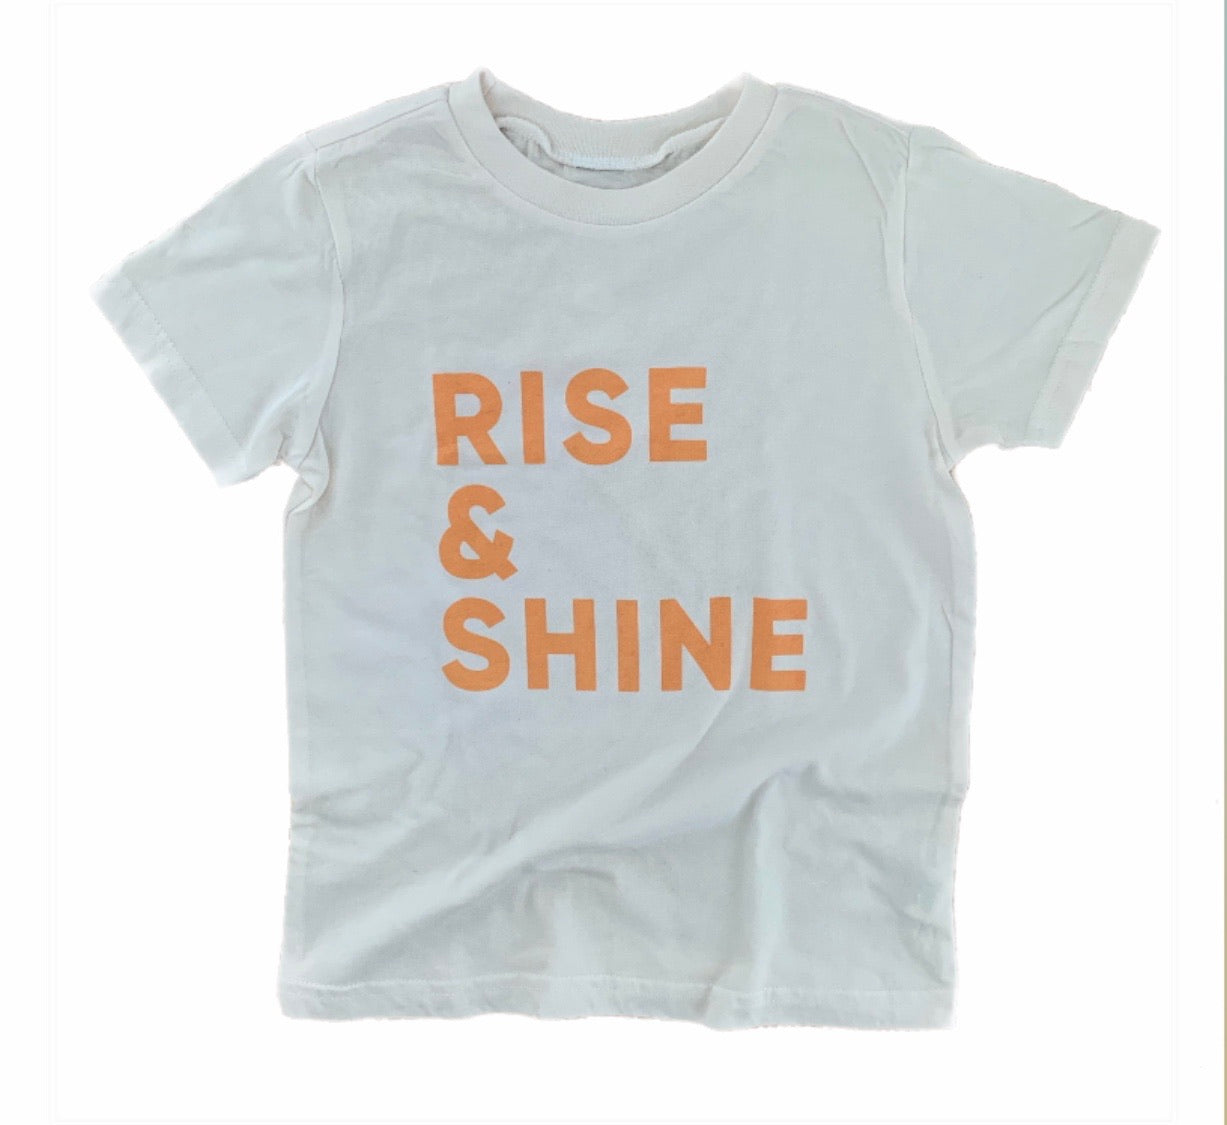 Rise and Shine kids tee from Honey Darling Company